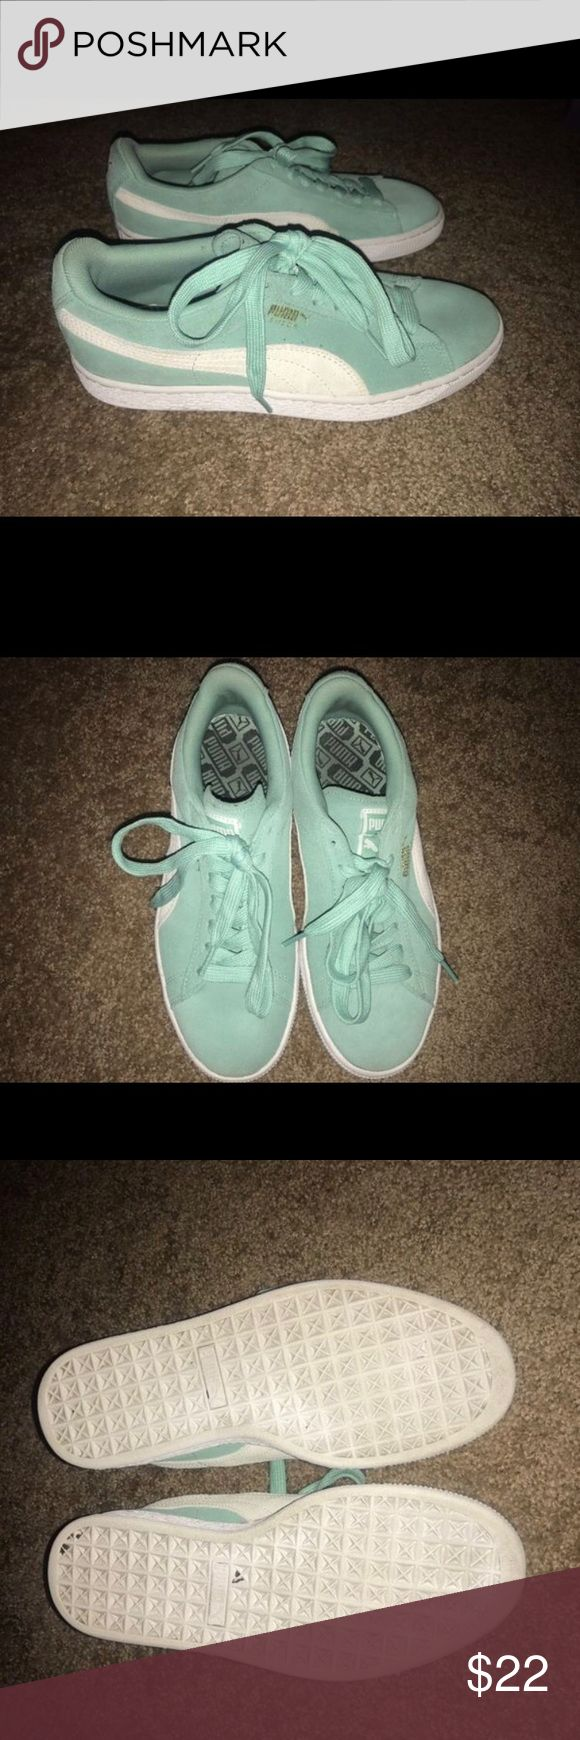 Pumas Women's 8, some wear. Teal. Puma Shoes Sneakers